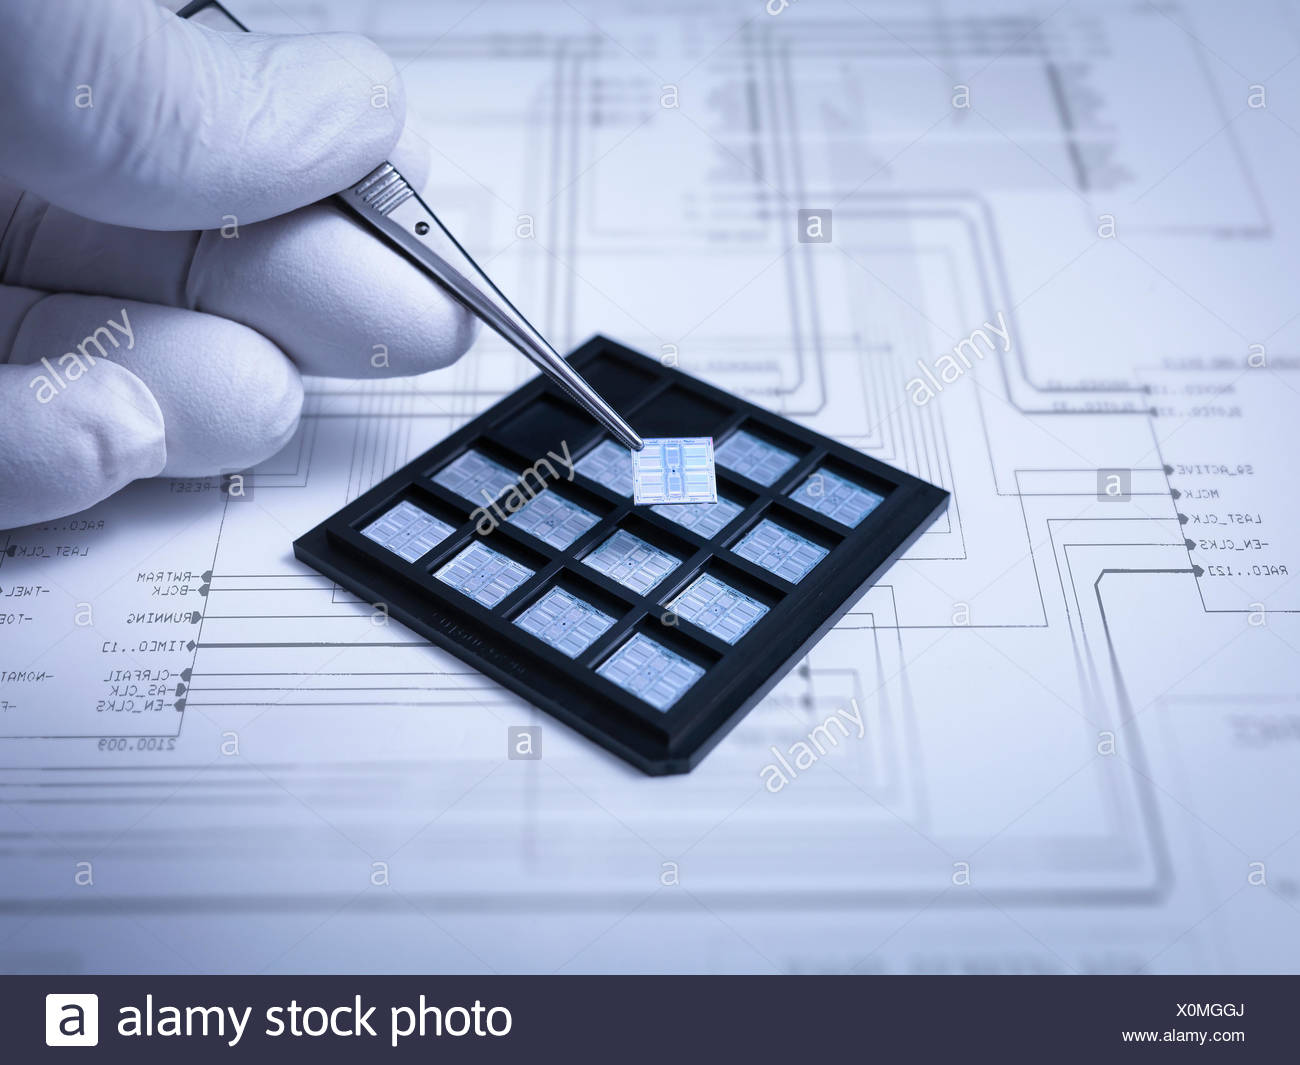 Small electronic chips held in tweezers in laboratory, close up - Stock Image